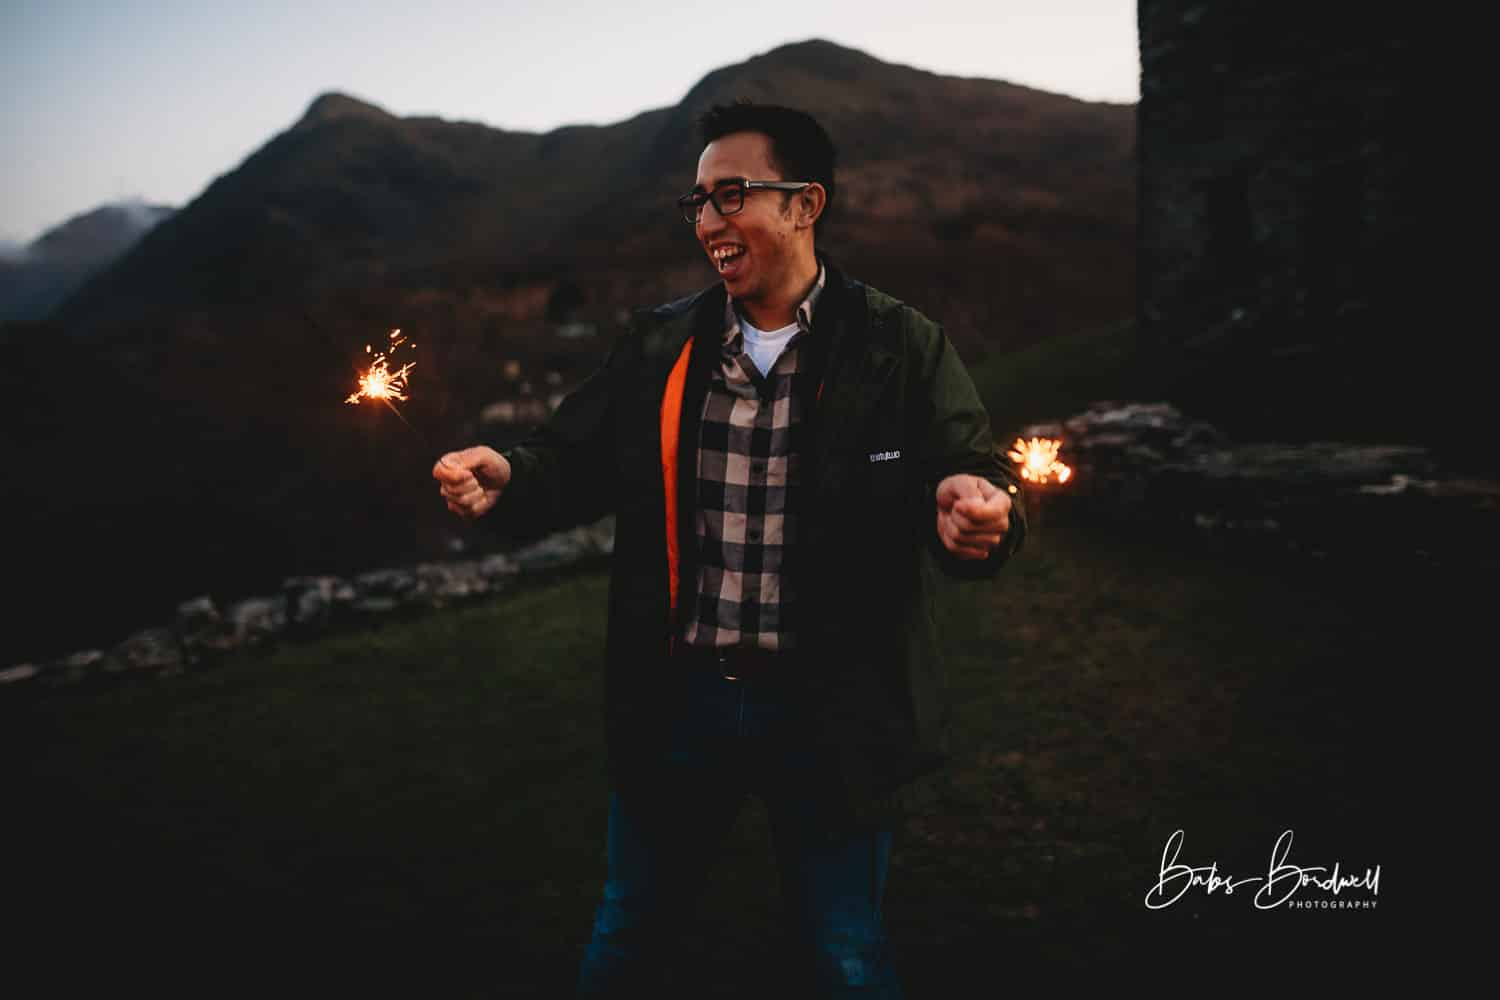 male having fun with sparklers against a mountainous Snowdonia backdrop